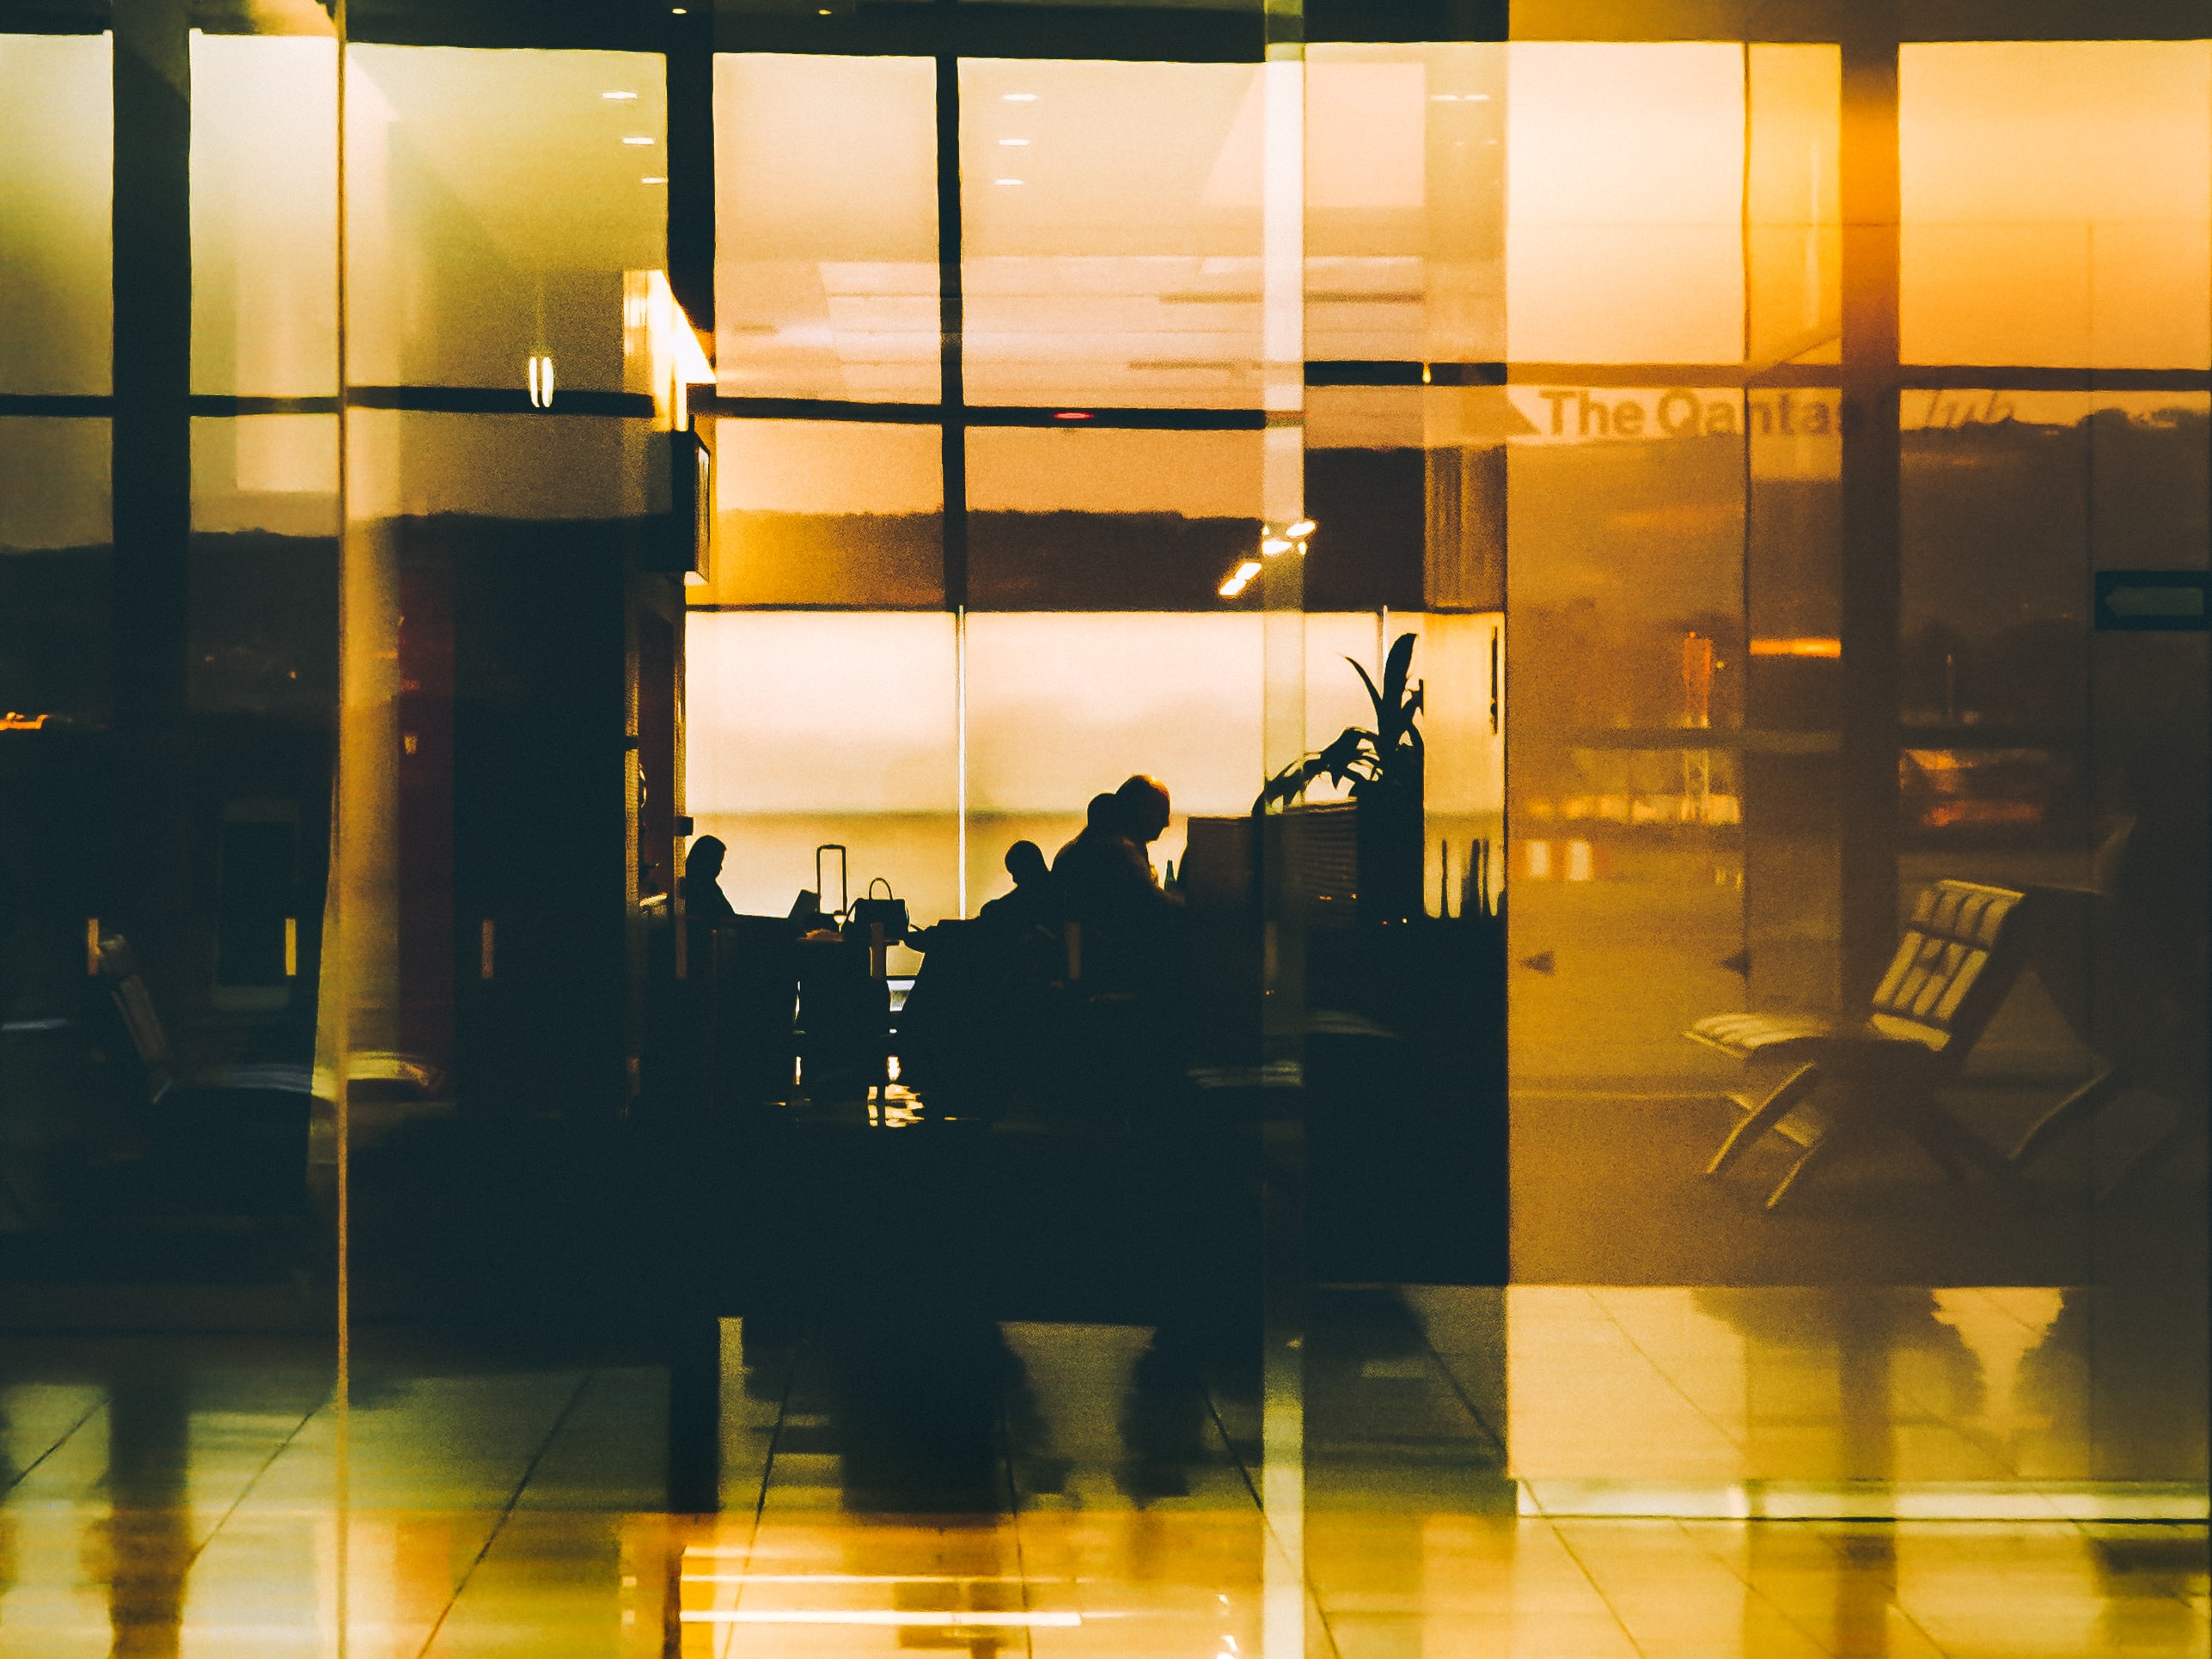 A fuzzy shot of silhouettes of people reflected in a glossy wall at the Adelaide Airport